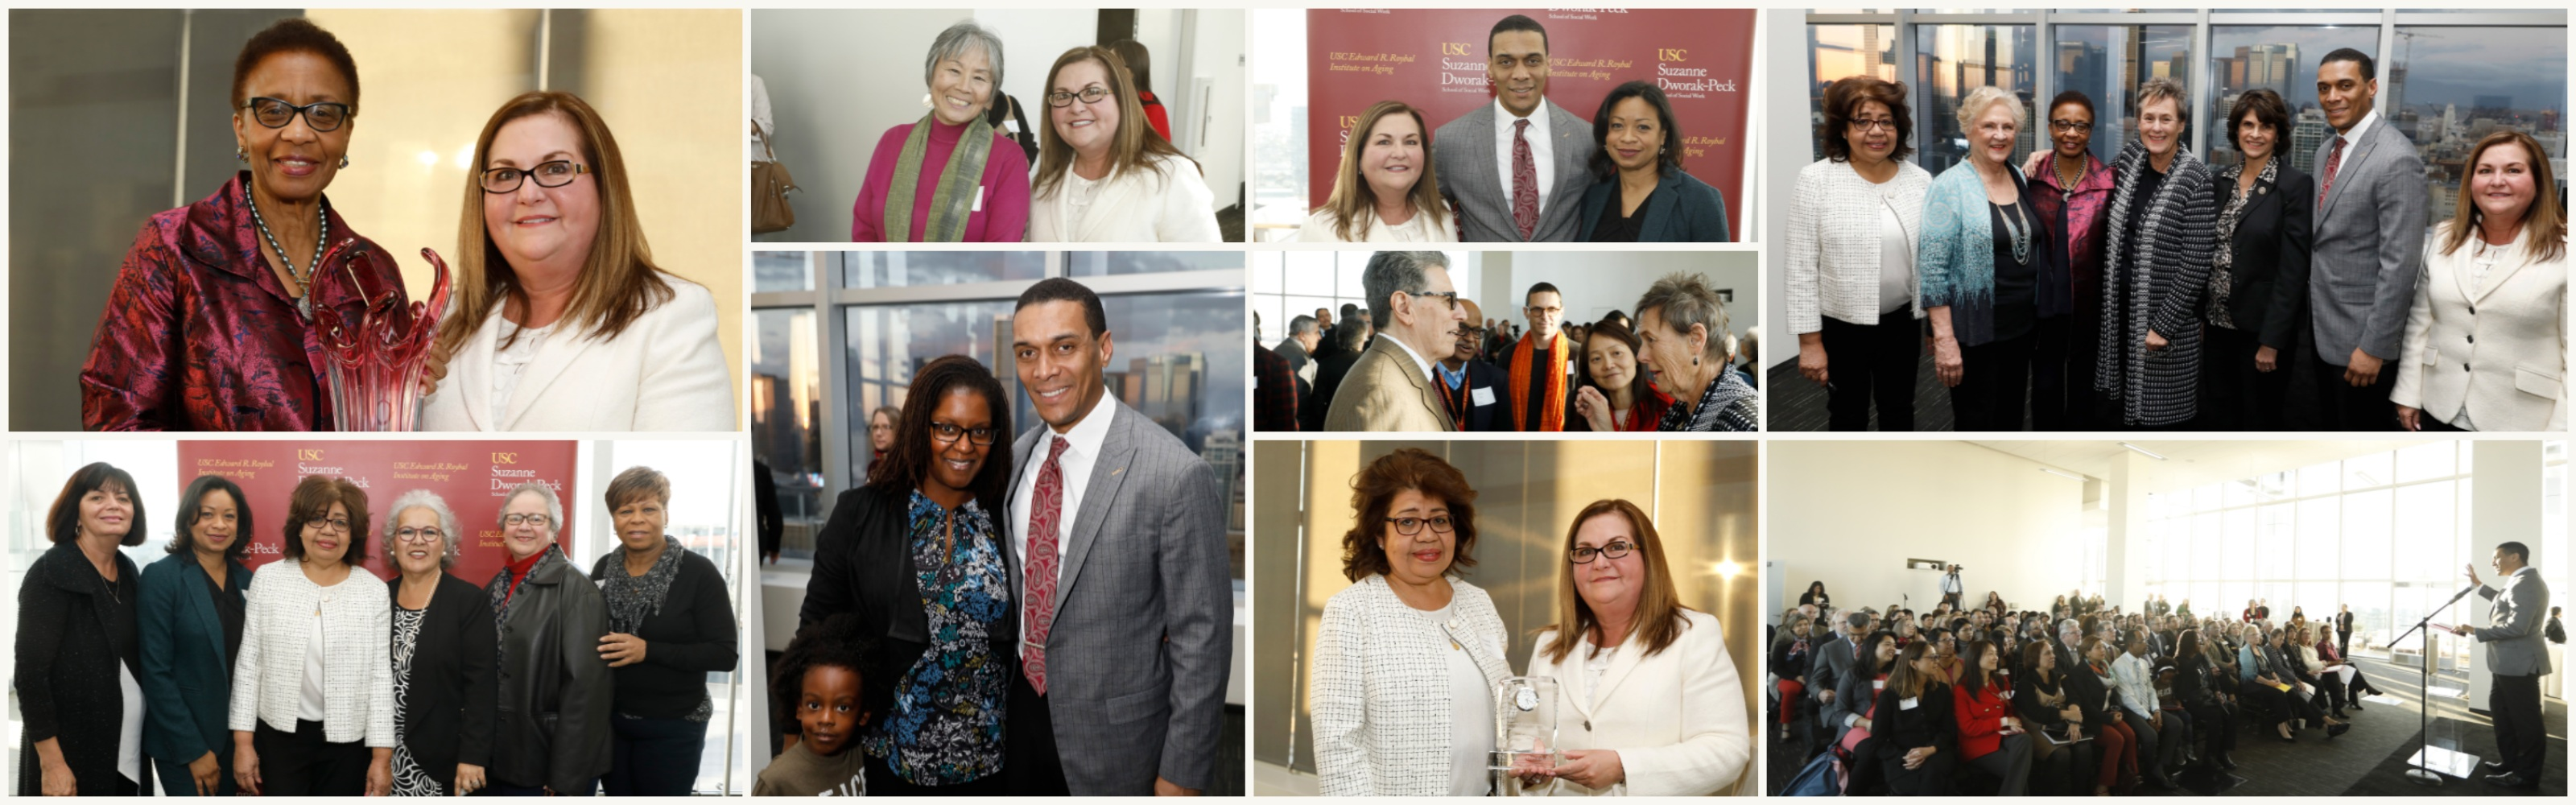 2018 USC Roybal Memorial Lecture collage of event images